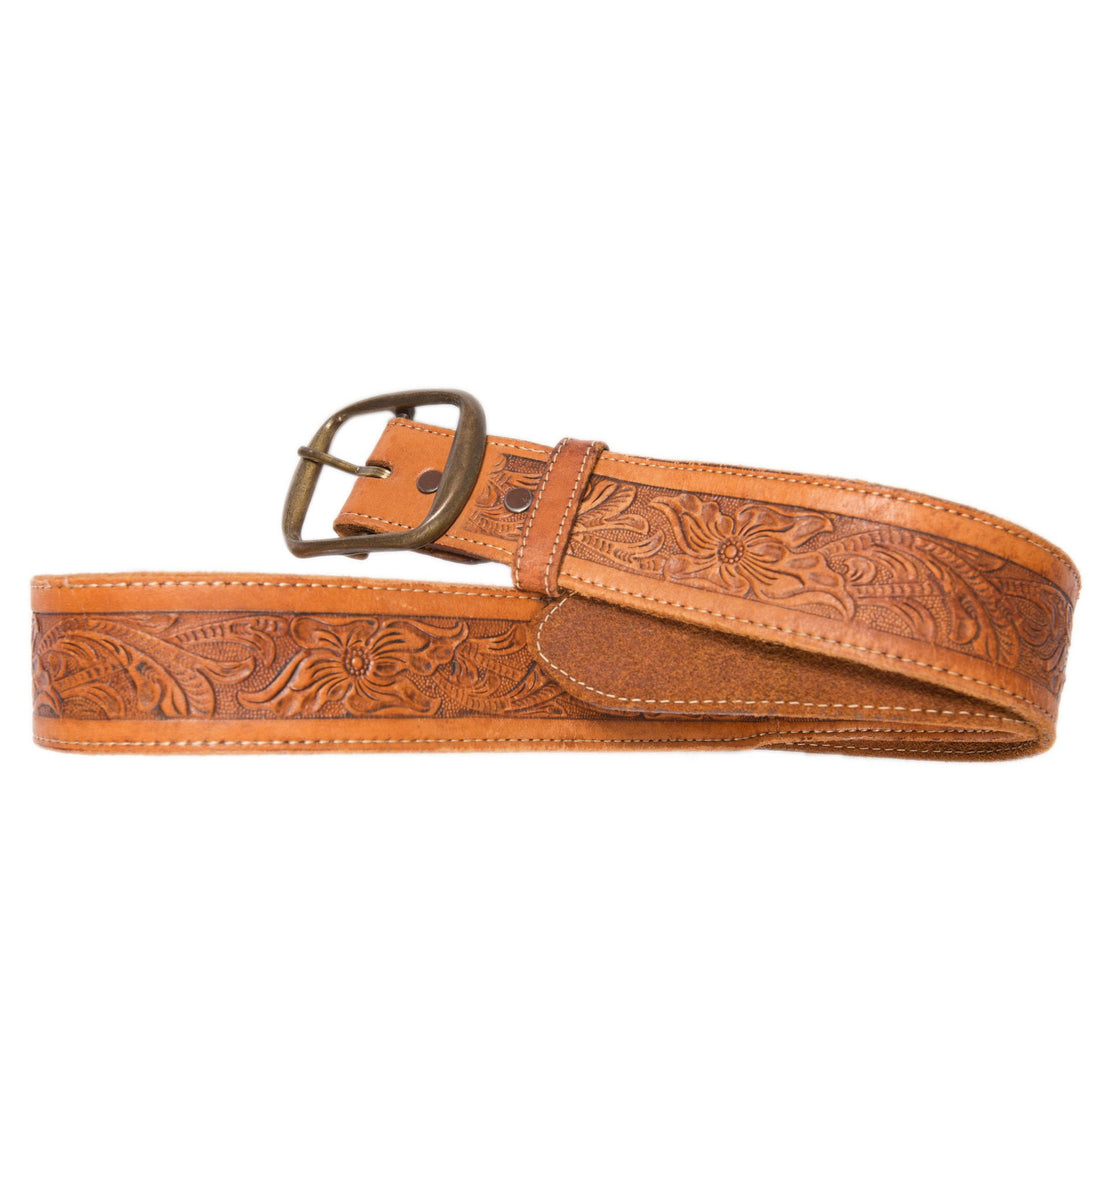 Vintage Tooled Leather Belt - Vintage - Iron and Resin